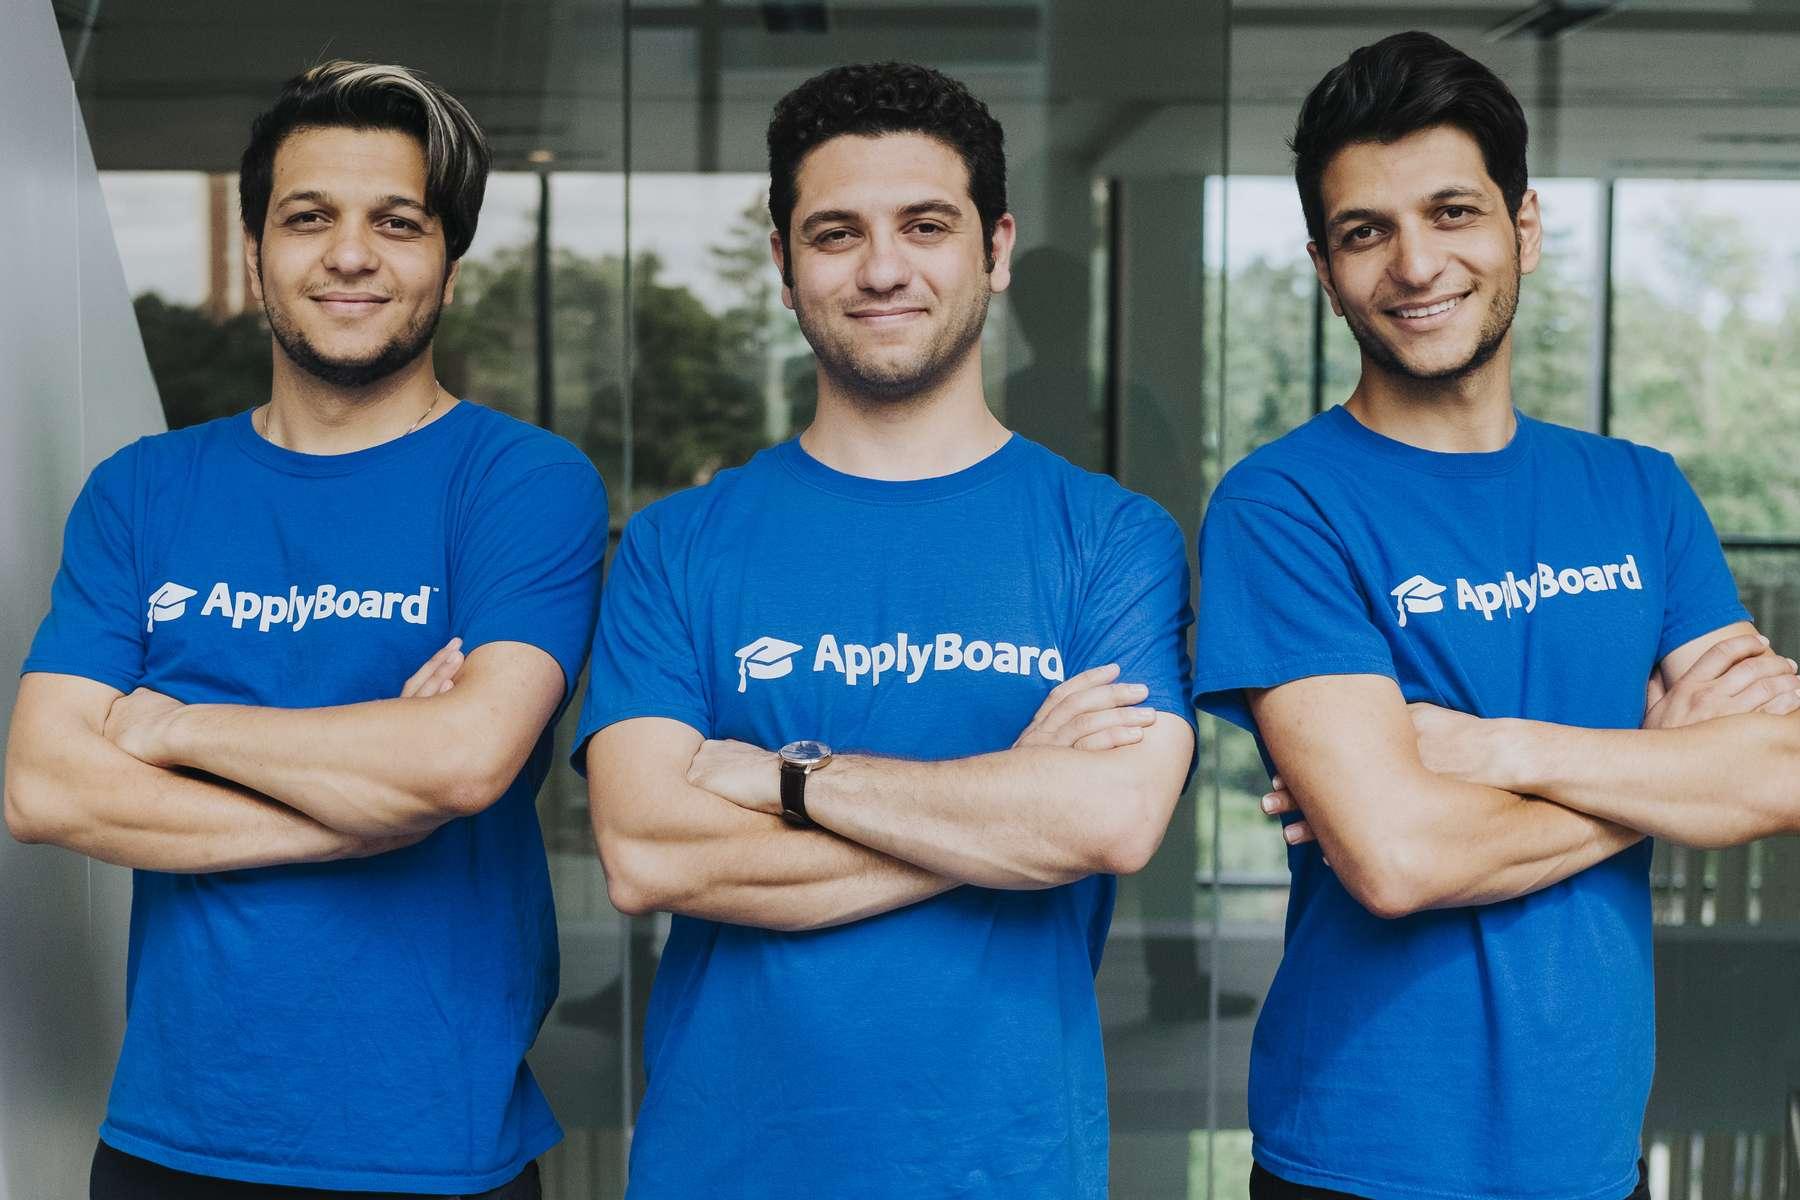 ApplyBoard co-founders Meti, Martin, and Massi Basiri